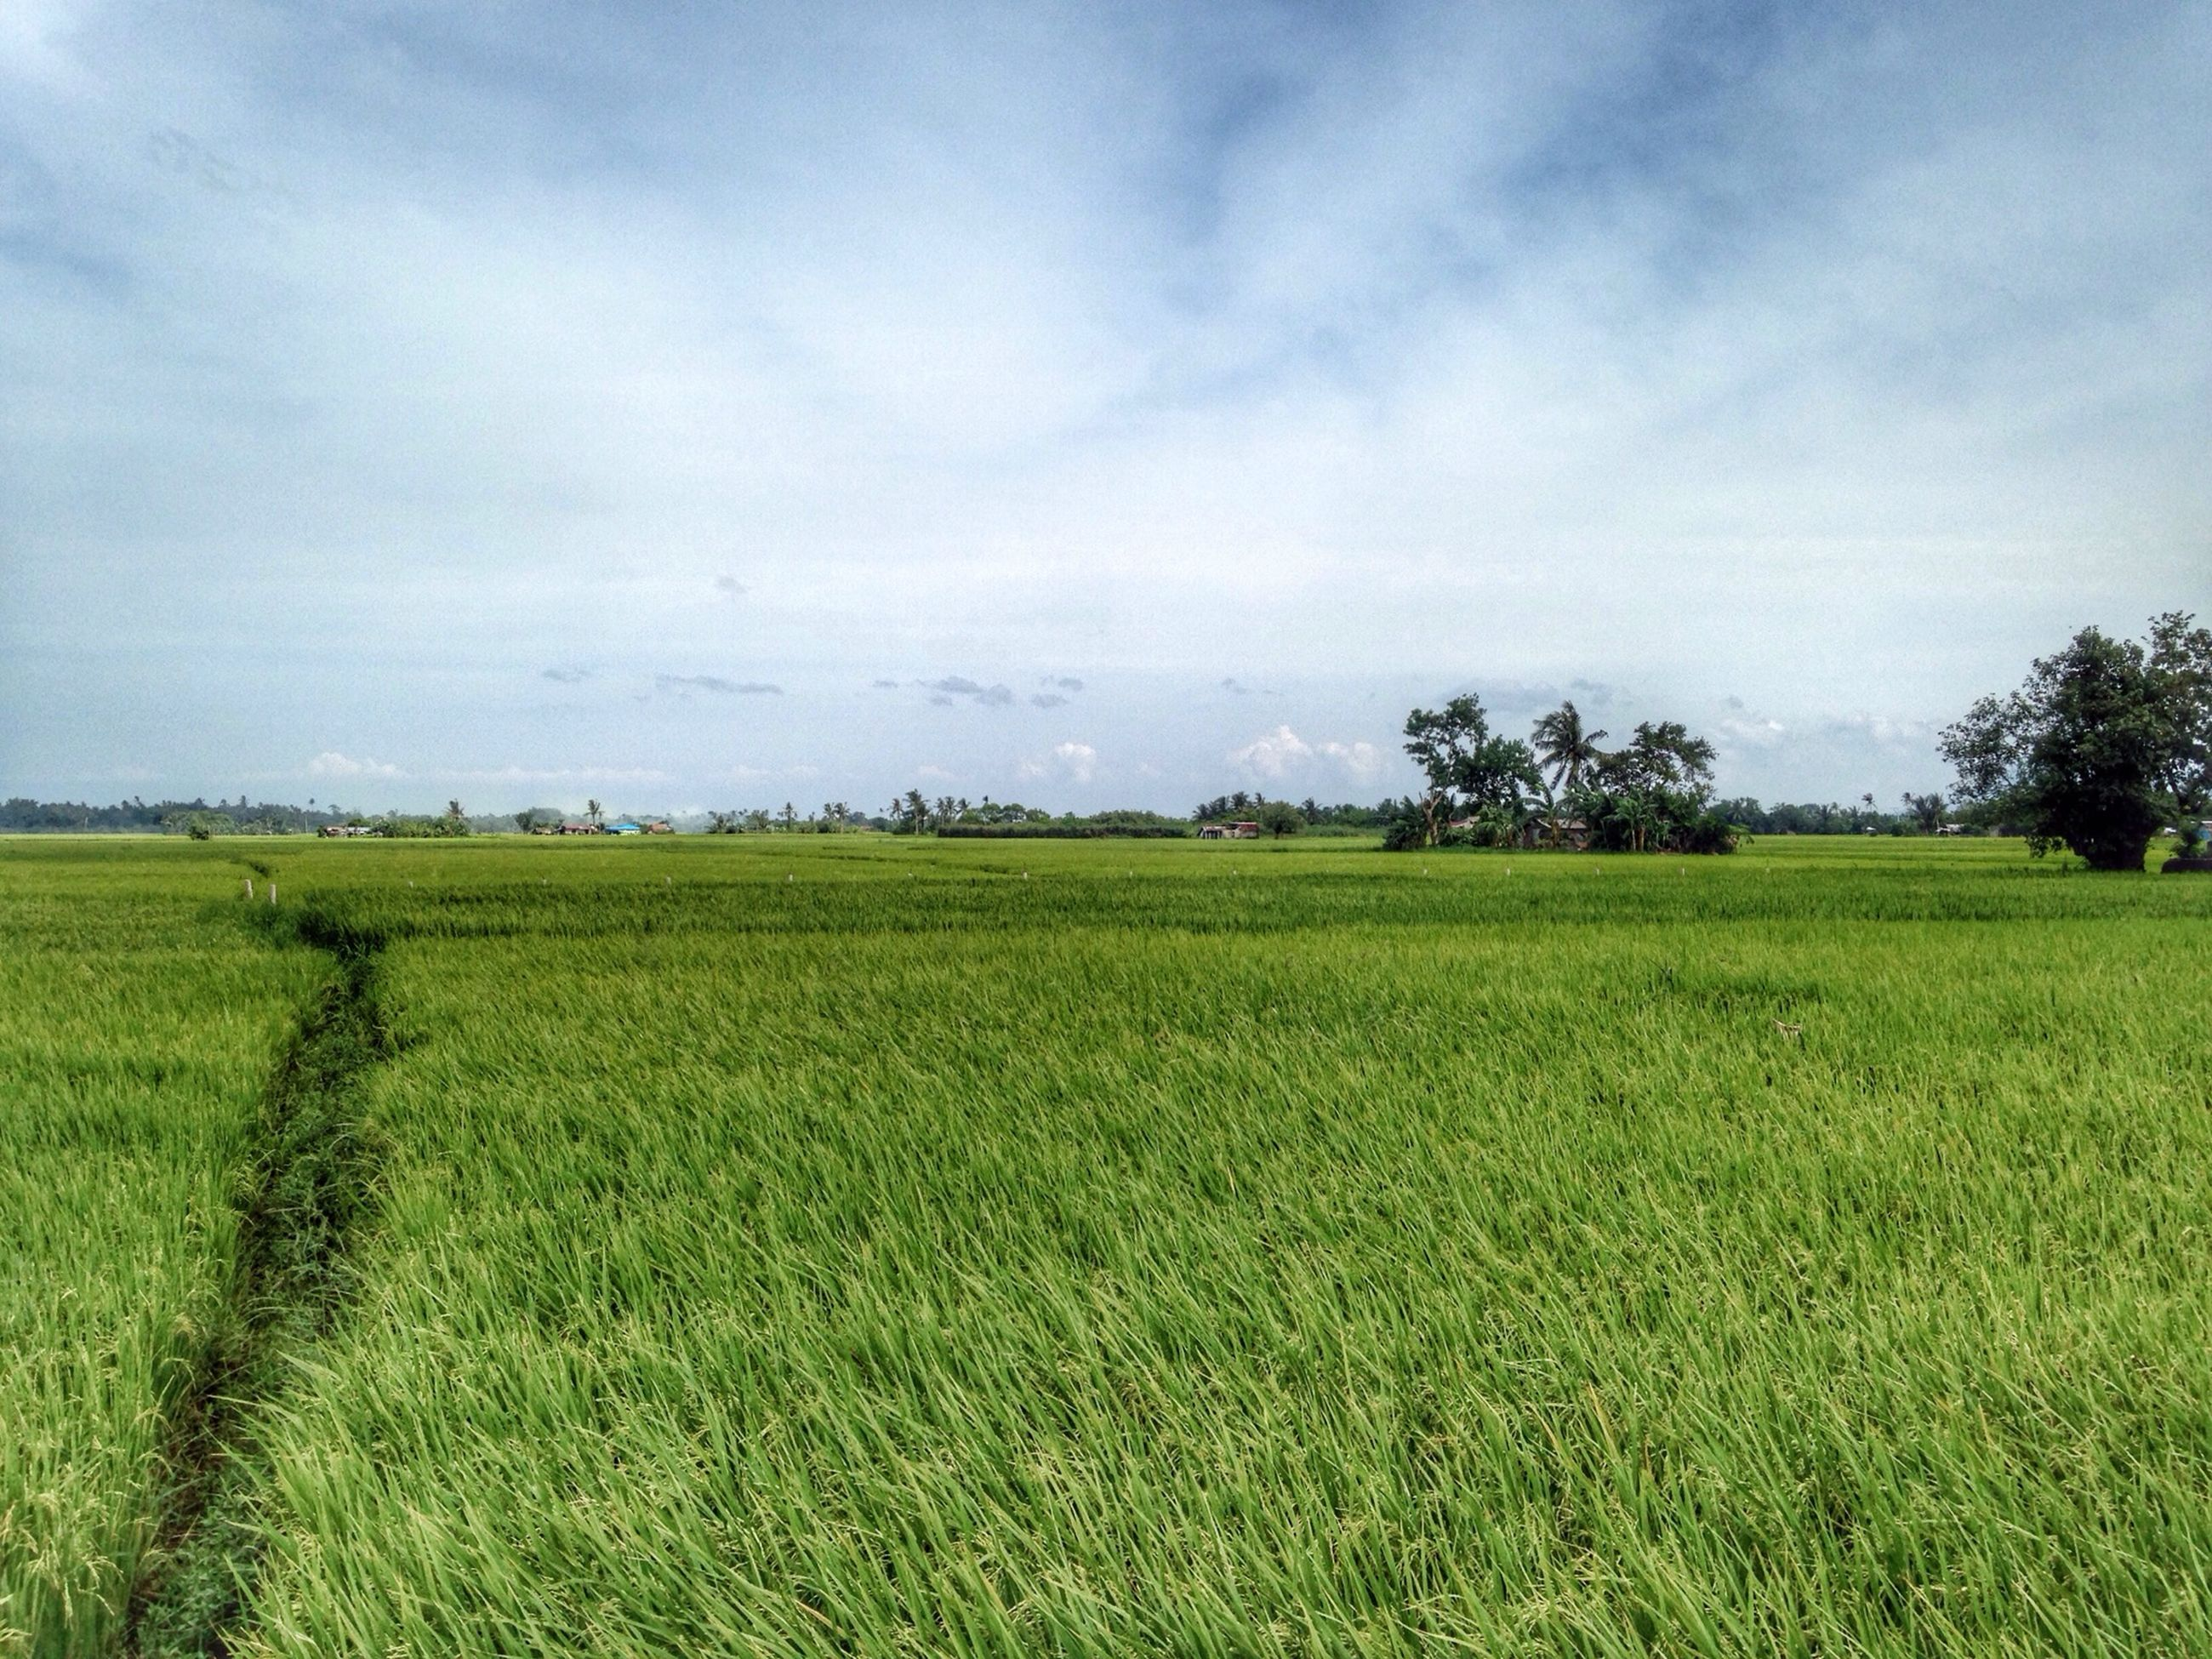 field, landscape, tranquil scene, tranquility, grass, green color, sky, agriculture, scenics, beauty in nature, rural scene, growth, nature, farm, tree, grassy, crop, green, idyllic, cloud - sky